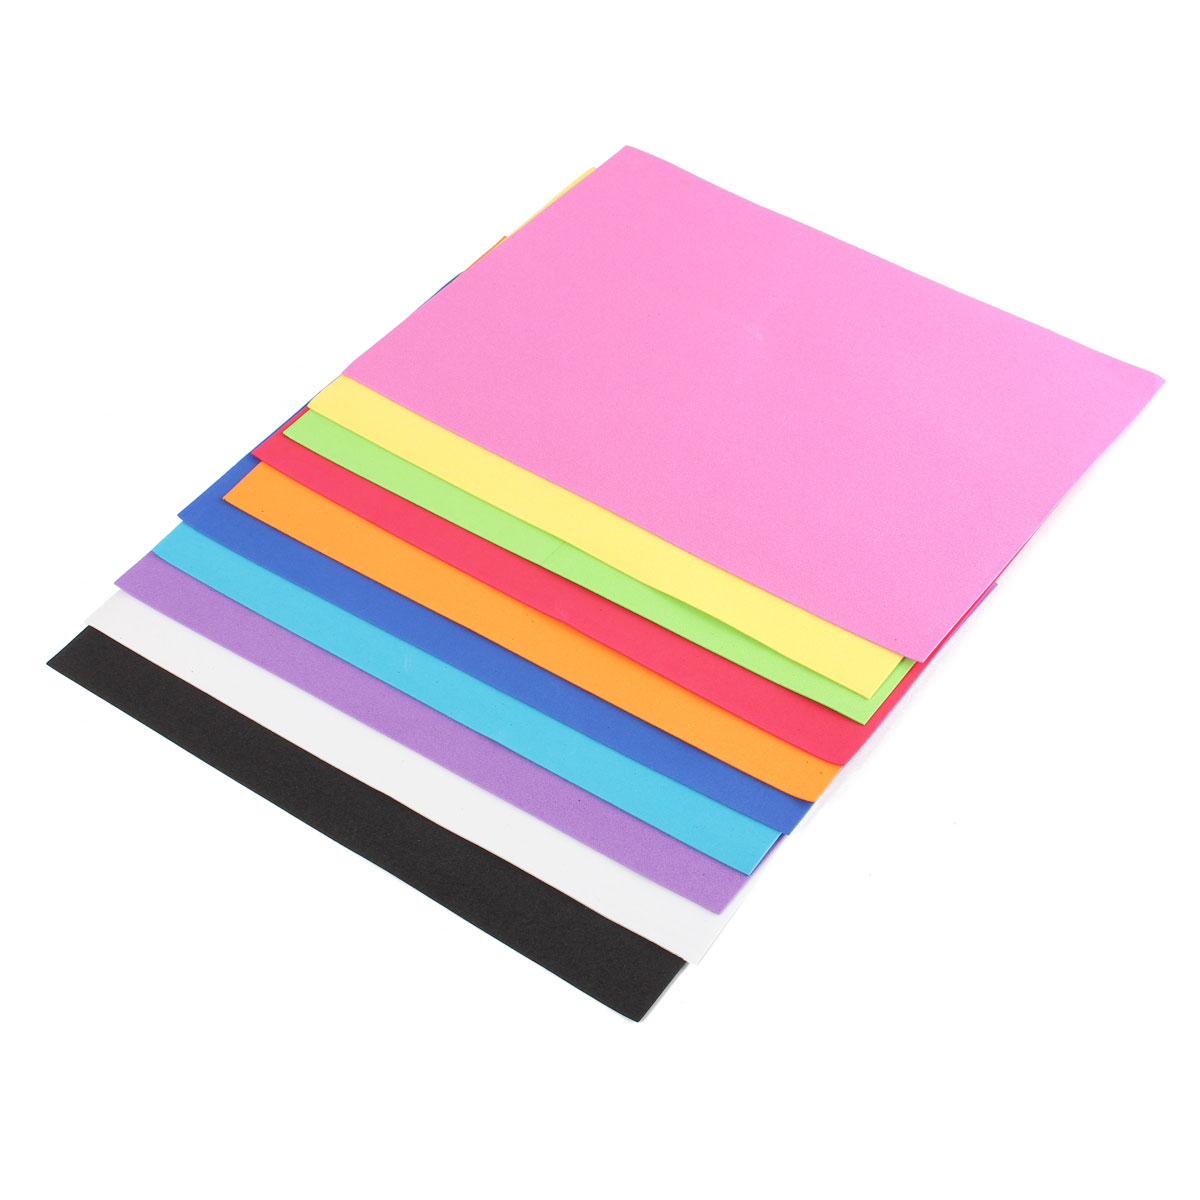 10Pcs Thick Multicolor Sponge Foam A4 Paper Fold Scrapbooking Paper Baby Kid Craft DIY Handicraft Supplies